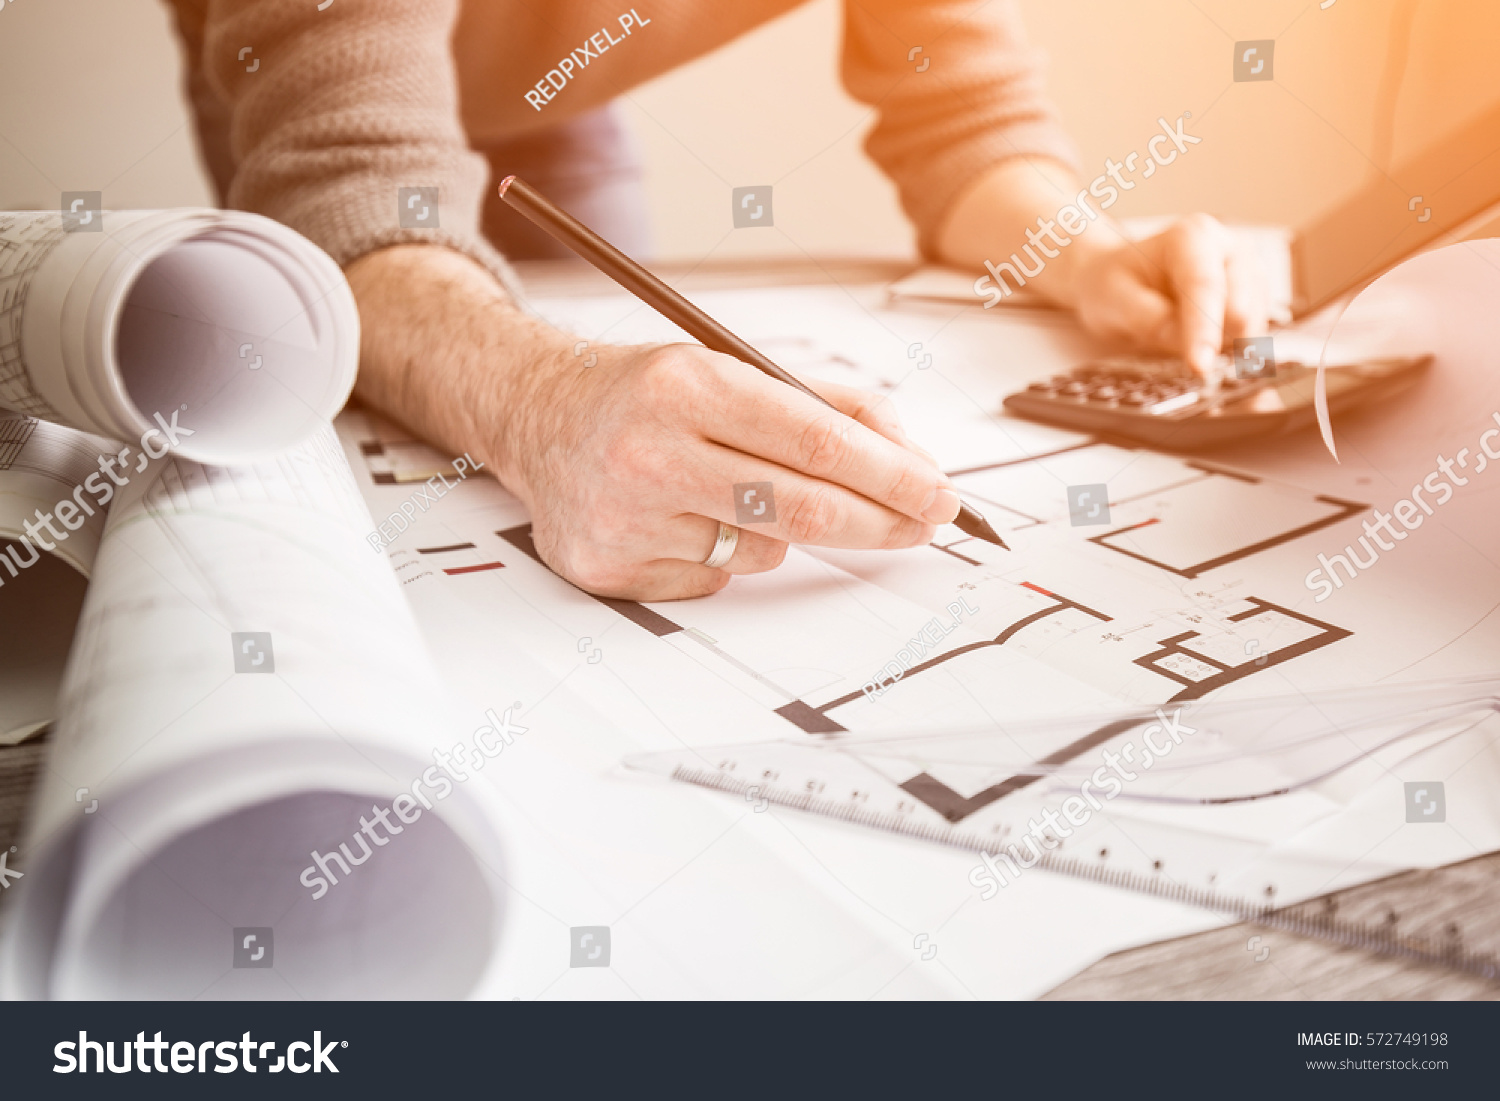 Architect architecture drawing project blueprint office stock photo architect architecture drawing project blueprint office business working architectural construction design designer ruler table workplace concept malvernweather Choice Image